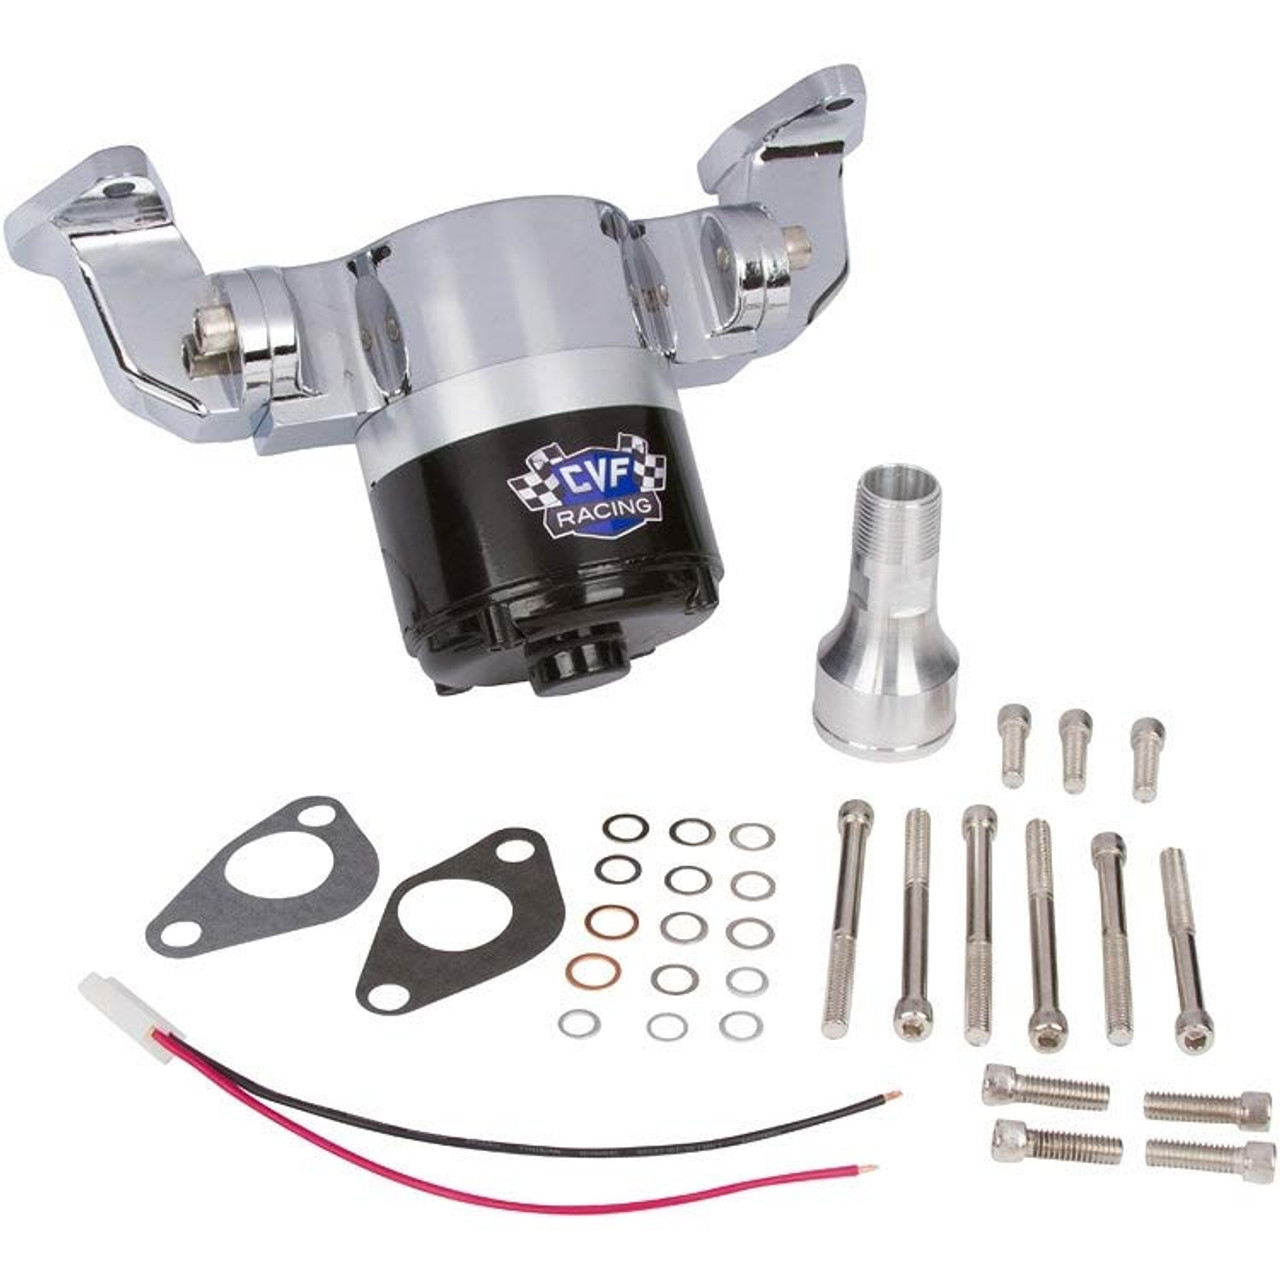 Chevy Small Block Electric Water Pump - 35 GPM, Chrome